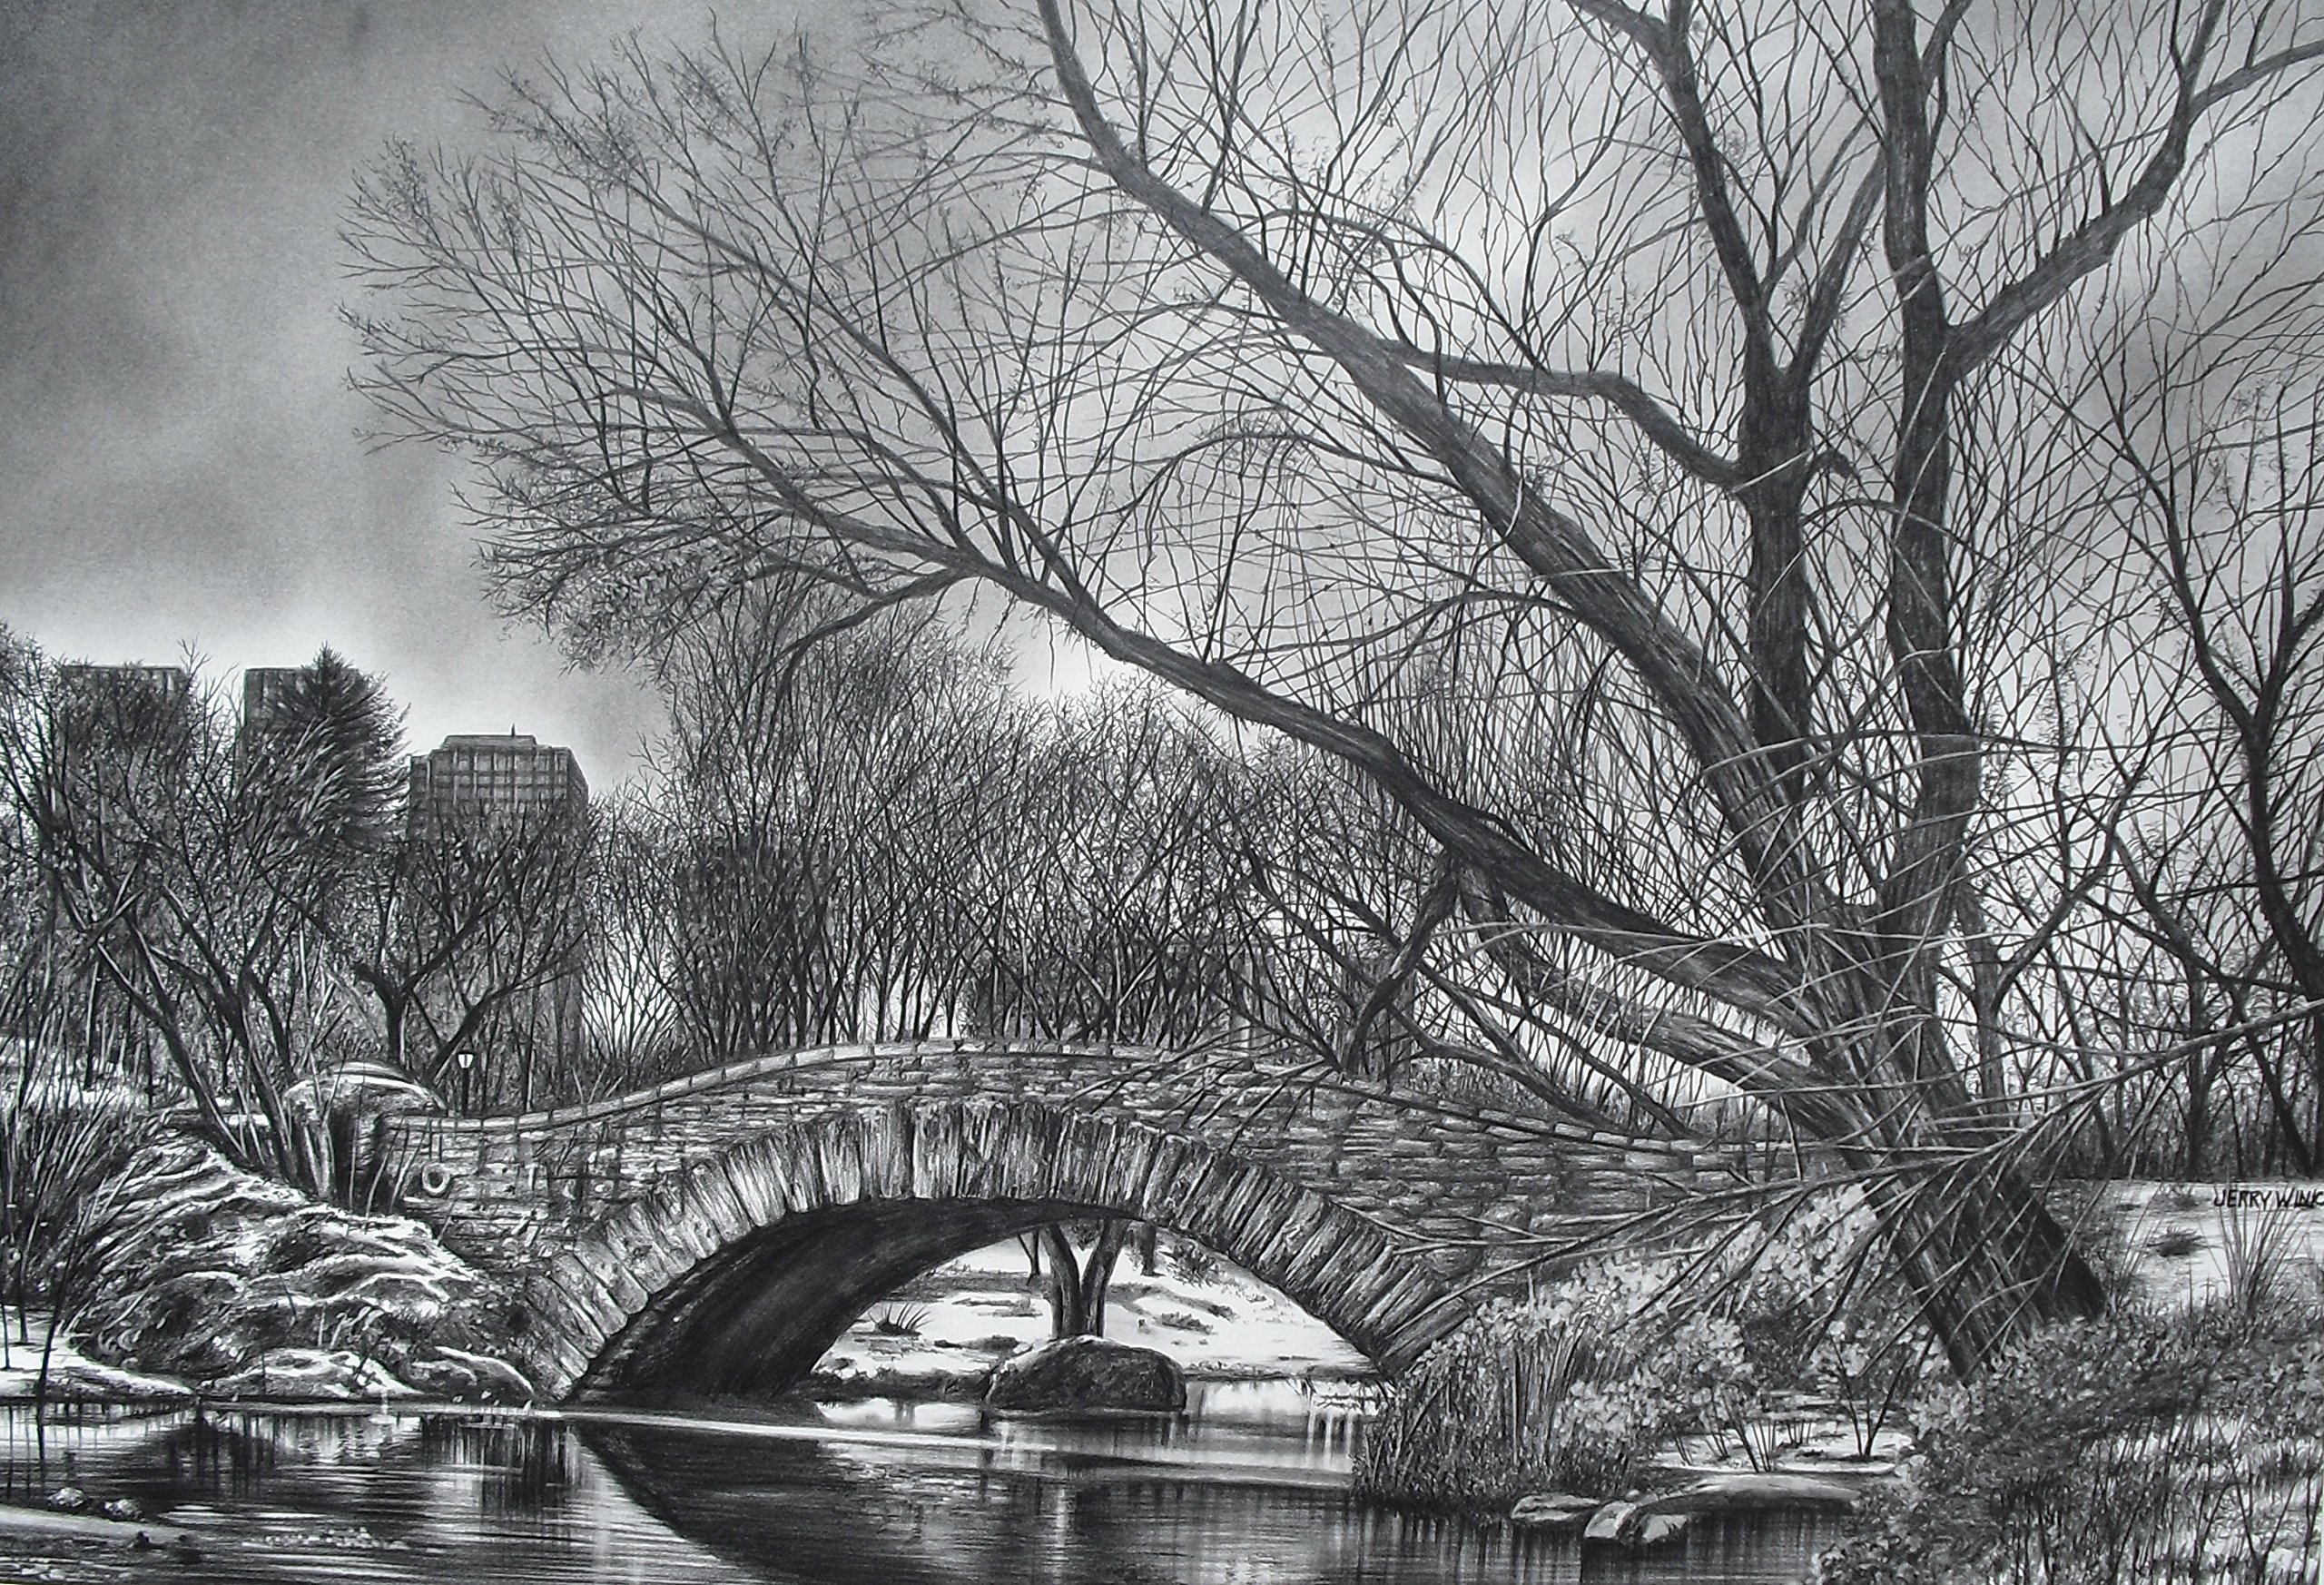 Central Park Bridge by Pencilworks Studio- Pencil Drawings by Jerry Winick